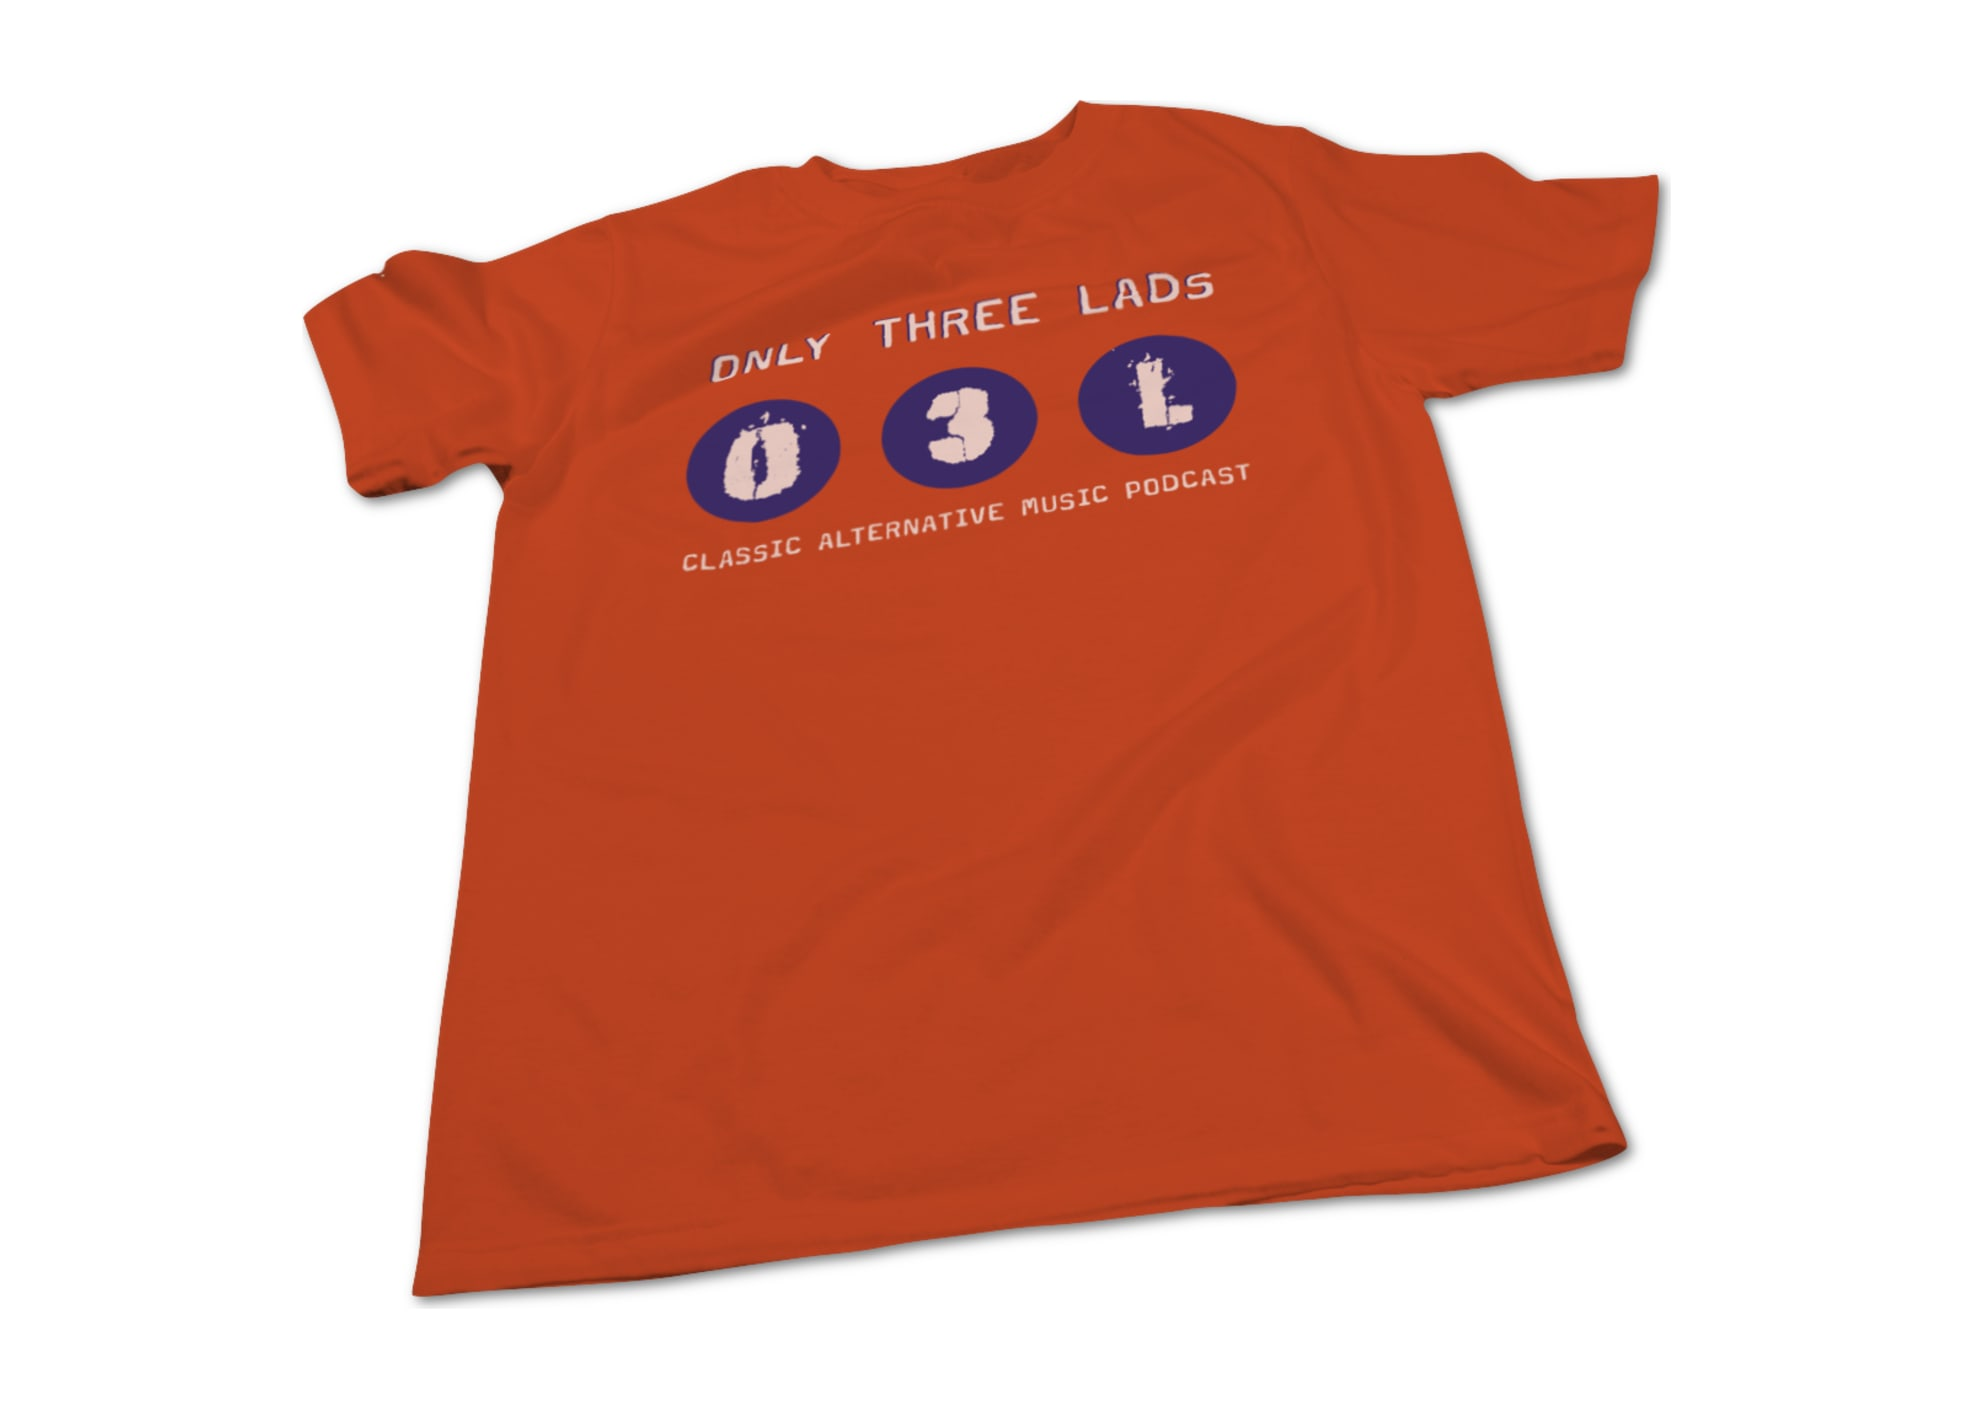 Only three lads o3l logo design  orange  1620172738